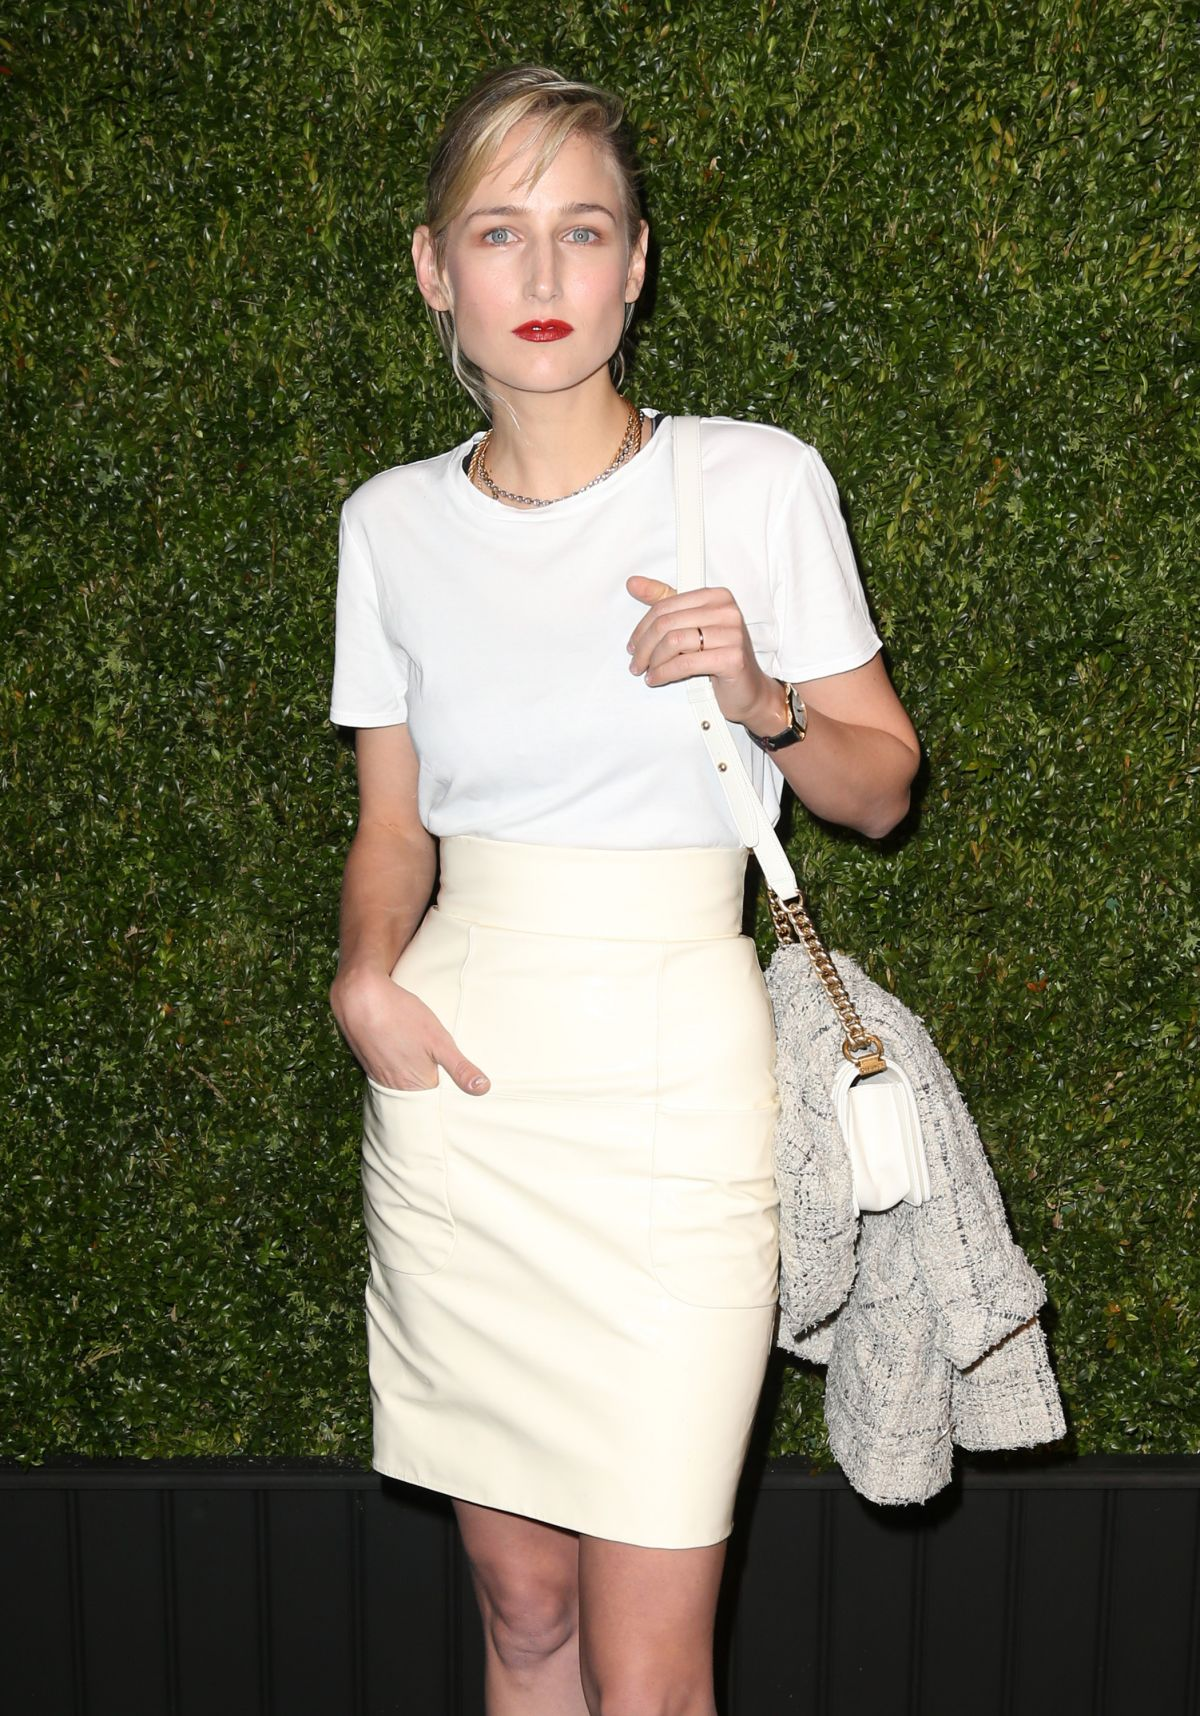 LEELEE SOBIESKI at 11th Annual Chanel Tribeca Film Festival Artists Dinner in New York 04/18/2016